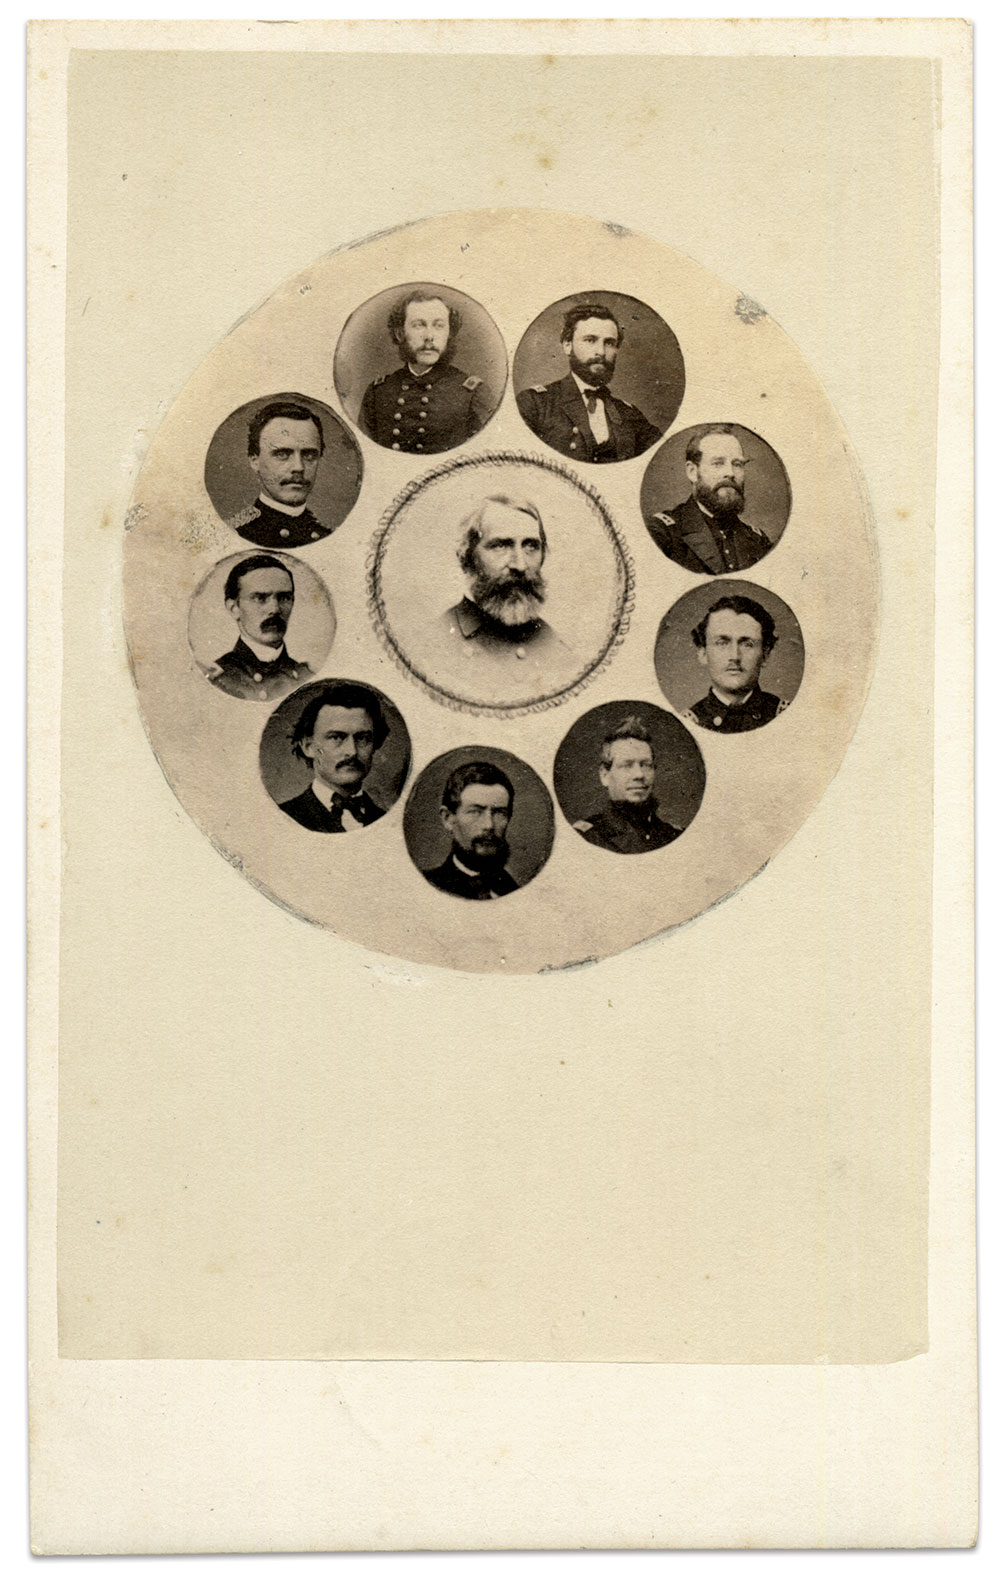 Cmdr. George H. Preble is surrounded by his subordinate officers of the St. Louis. Beginning with Gihon and moving clockwise, they are Lt. William F. Stewart, Acting Master George Cables, Lt. Cmdr. James Agustin Greer, Acting Master Allen Hoxie, Acting Ensign Hazard Marsh, Paymaster Judson S. Post, Asst. Surg. Frederick B.A. Lewis (the cartes de visite featured in this story are from his album) and Marine 1st Lt. William J. Squires. Carte de visite by Photo Americano of Lisbon, Portugal. Author's Collection.